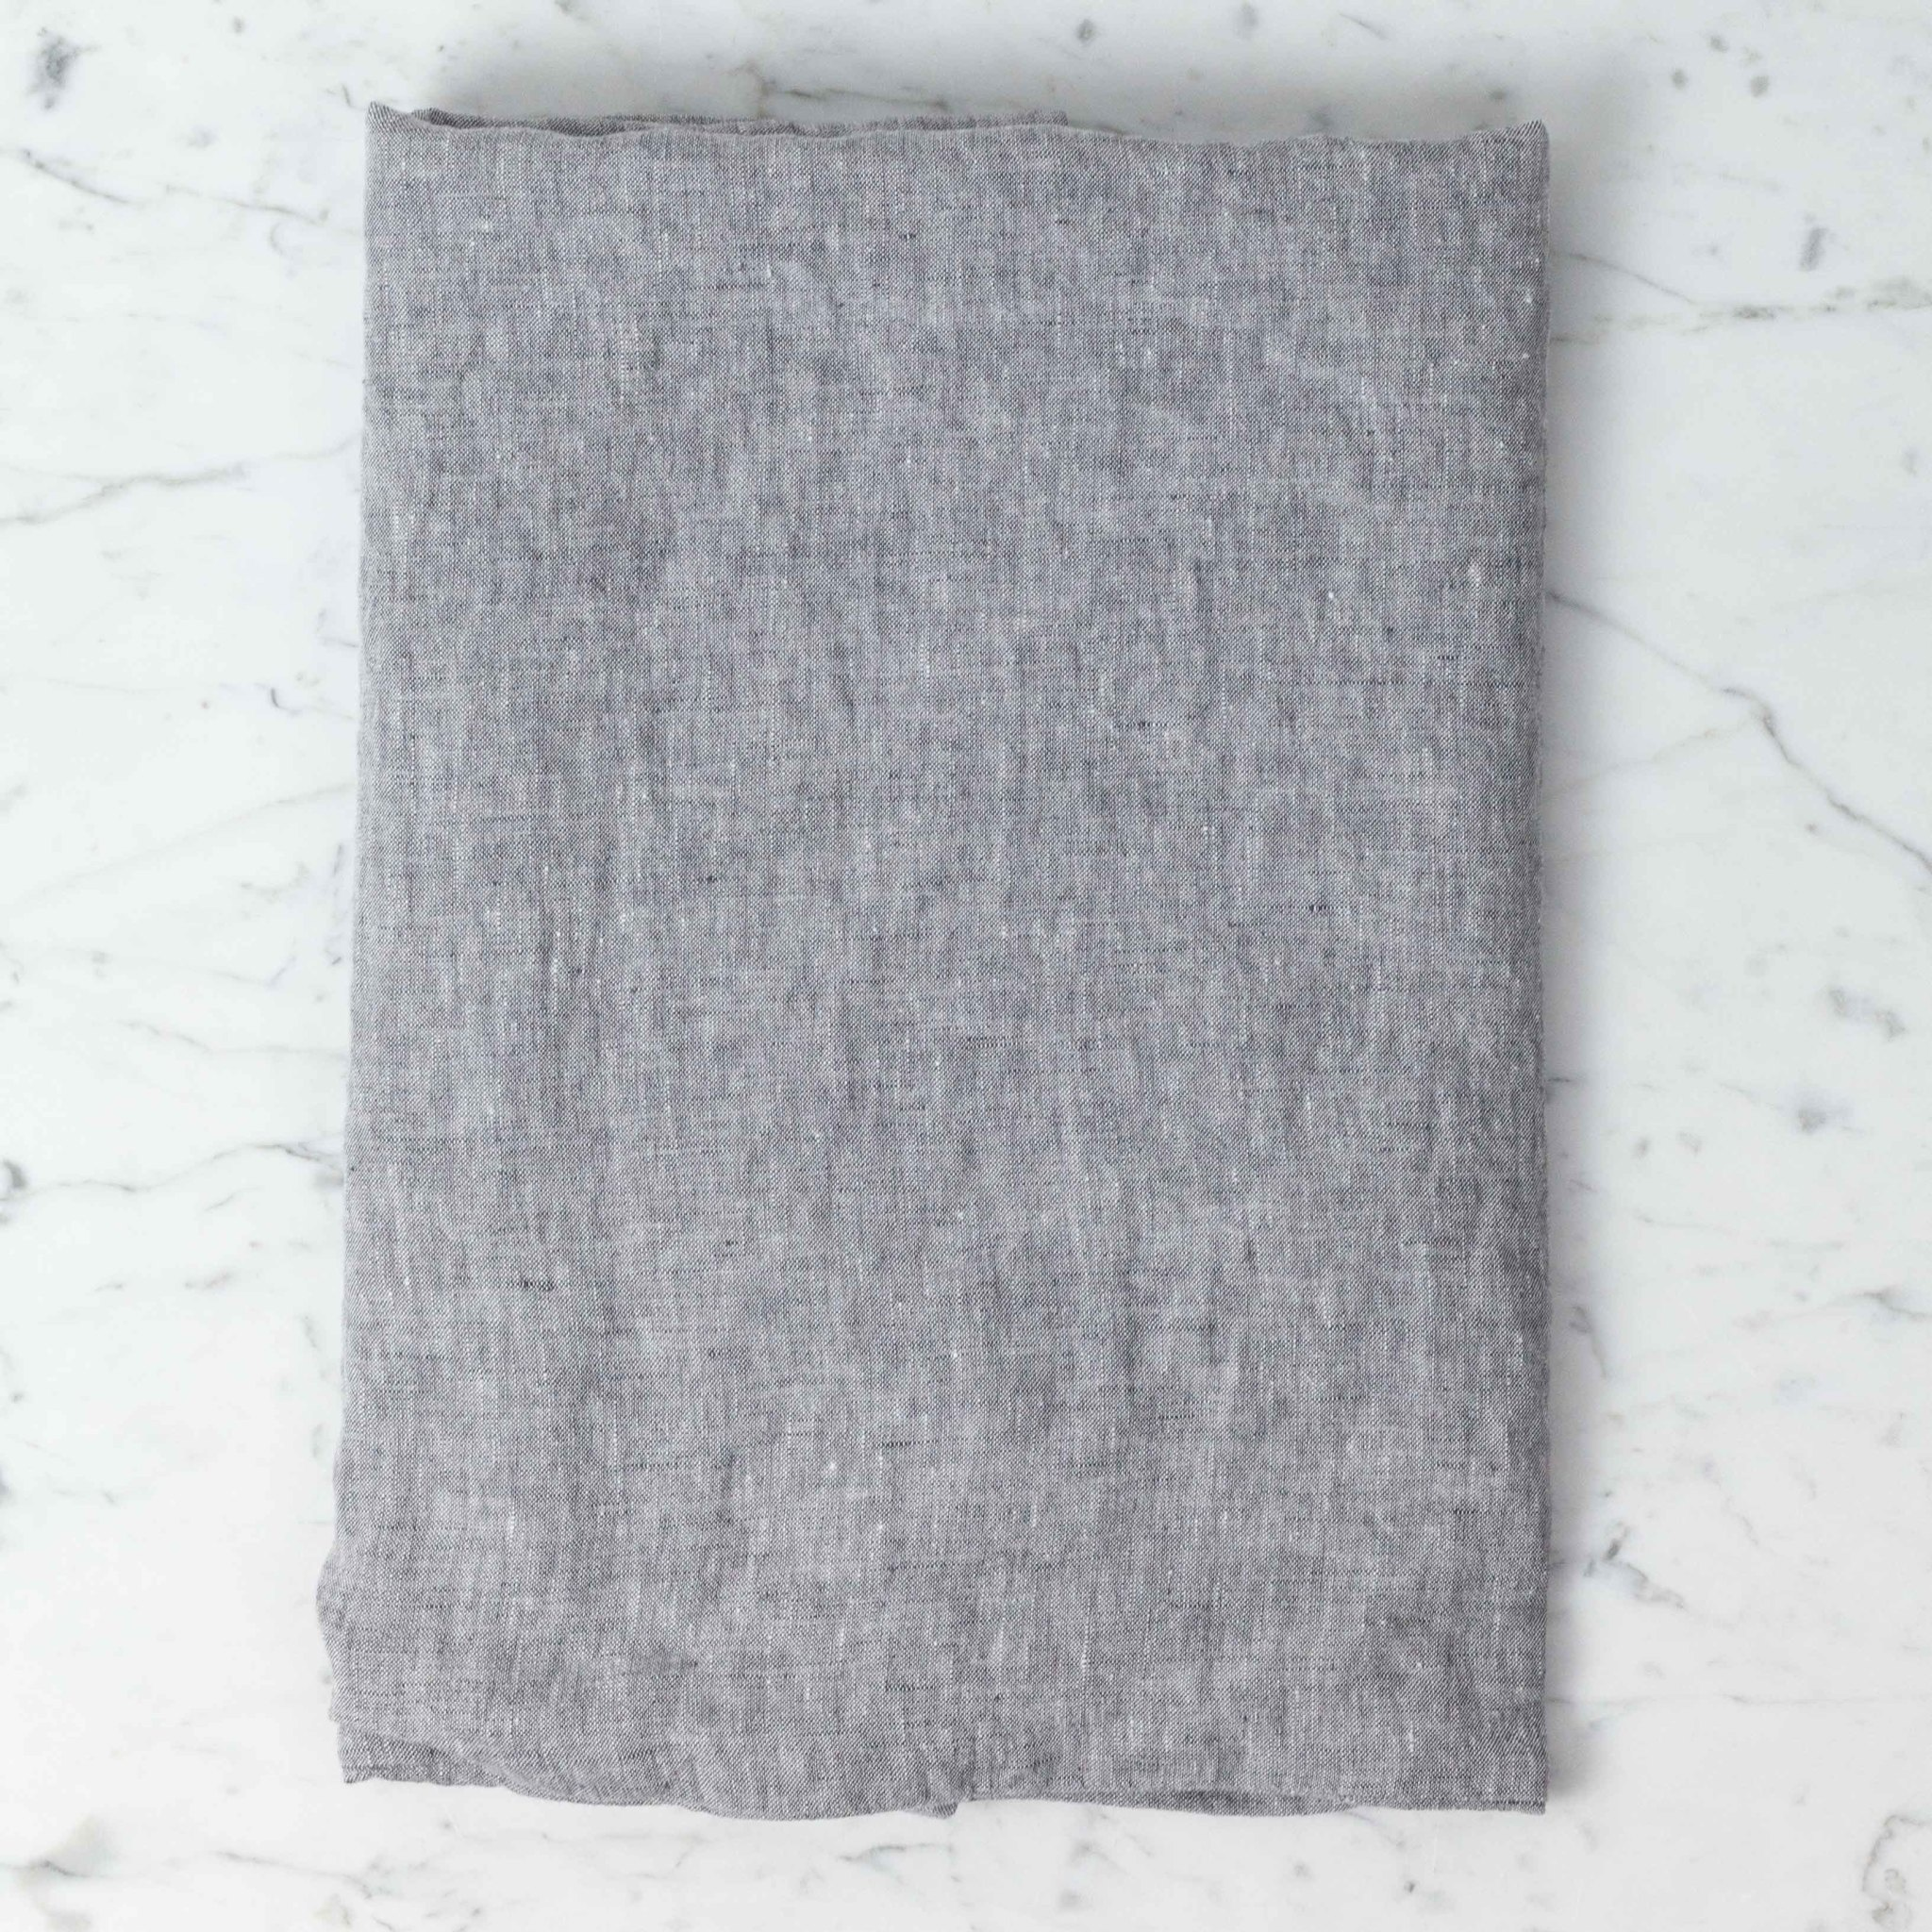 Washed French Linen Pillow Cover - Grey Chambray - 26 x 26""